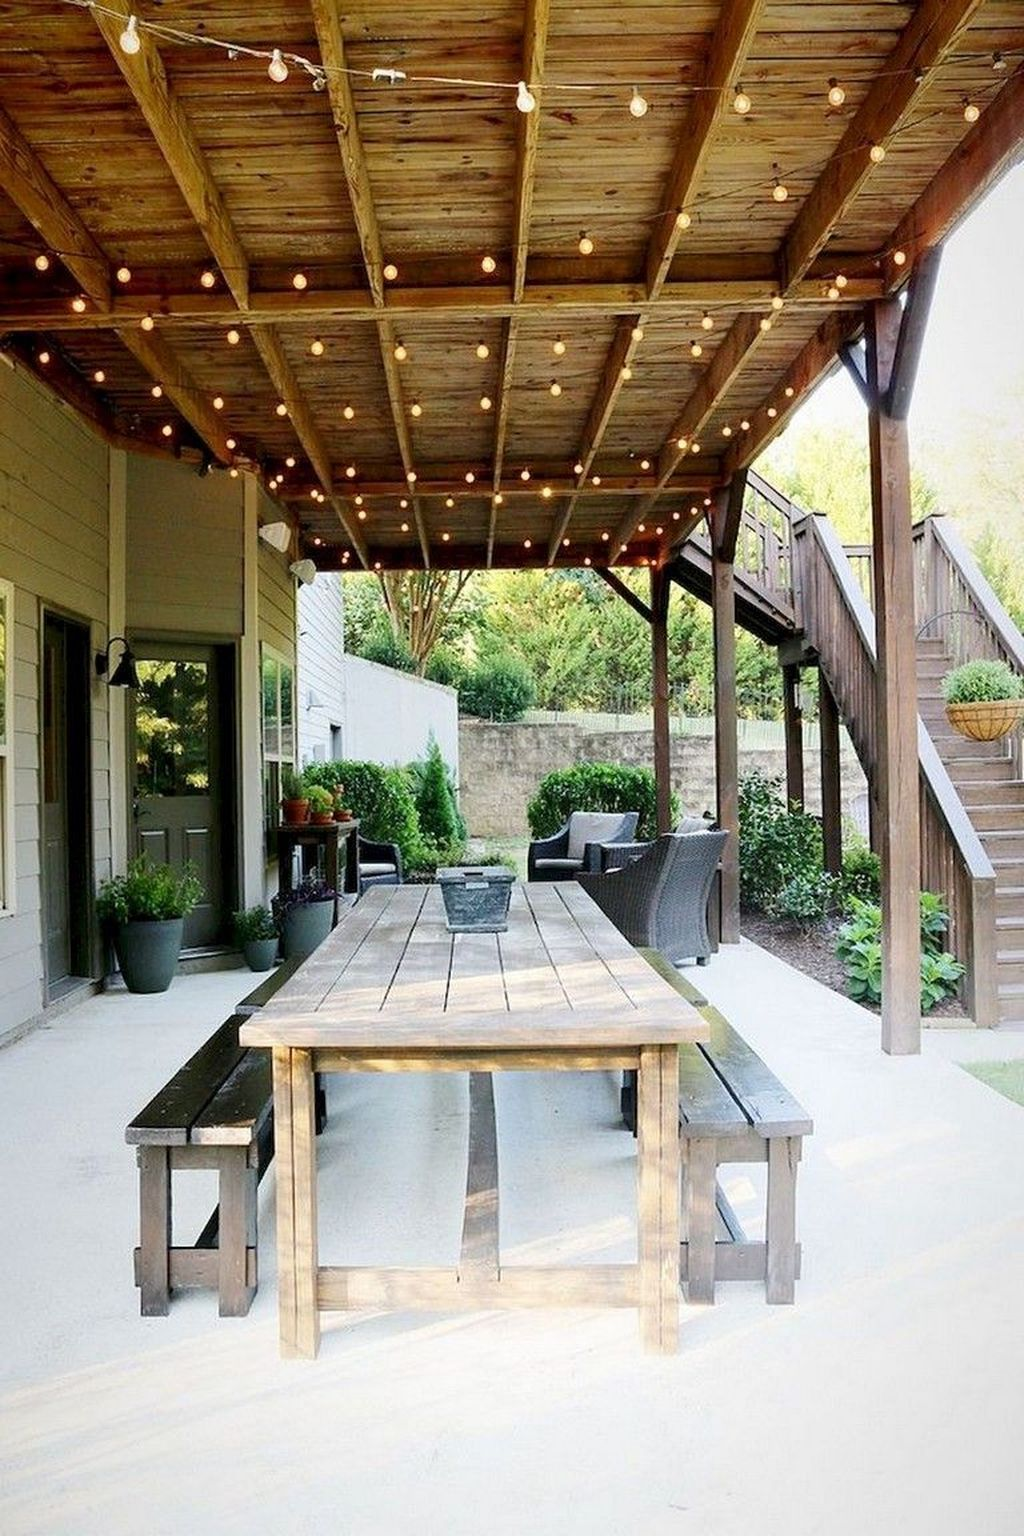 f401839ddd2 Curate your own personal oasis with the top 33 ideal outdoor patio ideas.  Discover great